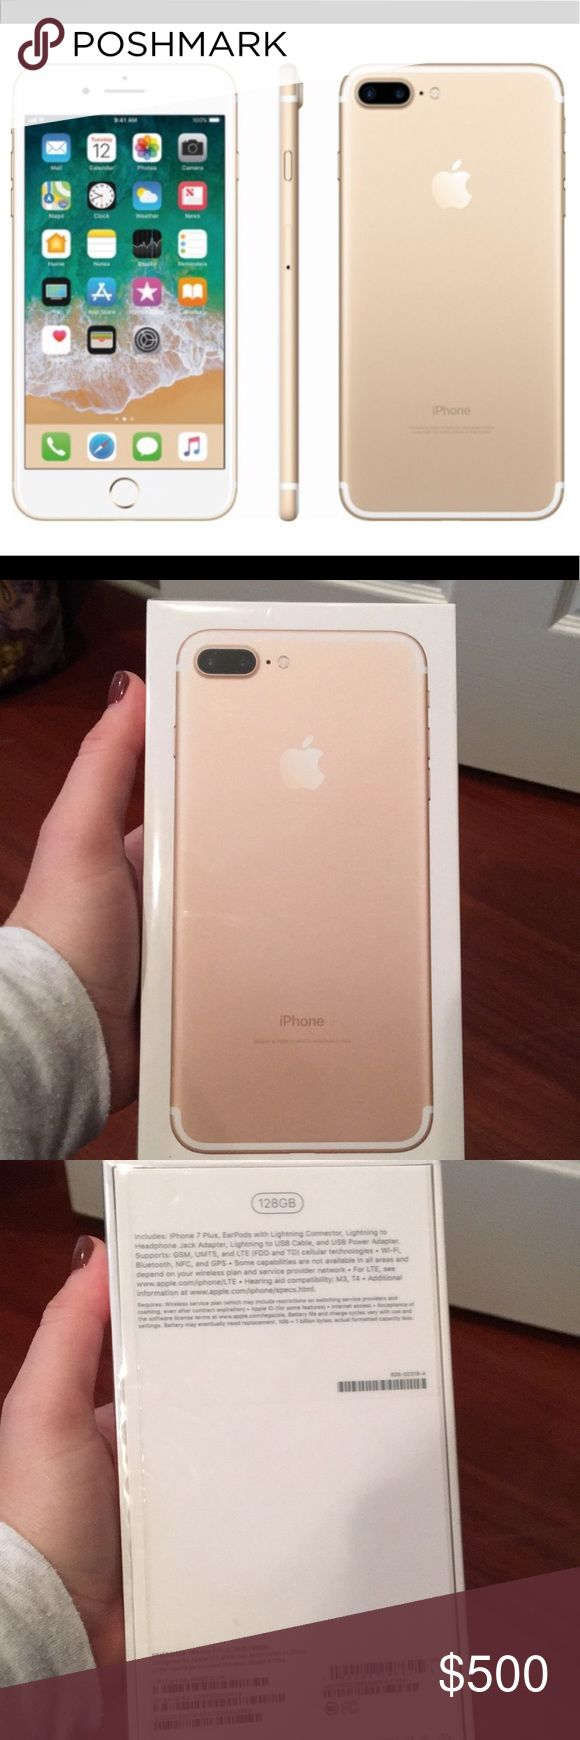 iPhone 7 Plus in Gold 128GB Brand New AT&T iPhone 7 Plus features Dual 12MP cameras for high-resolution zoom and an ƒ/1.8 aperture for great low-light photos and 4K video. Optical image stabilization. A 5.5-inch Retina HD display with wide color and 3D Touch. An A10 Fusion chip for up to 2x faster performance than iPhone 6. Touch ID. Faster LTE. The longest battery life in an iPhone. Immersive stereo sound, splash and water resistant, and iOS 10. Apple Other